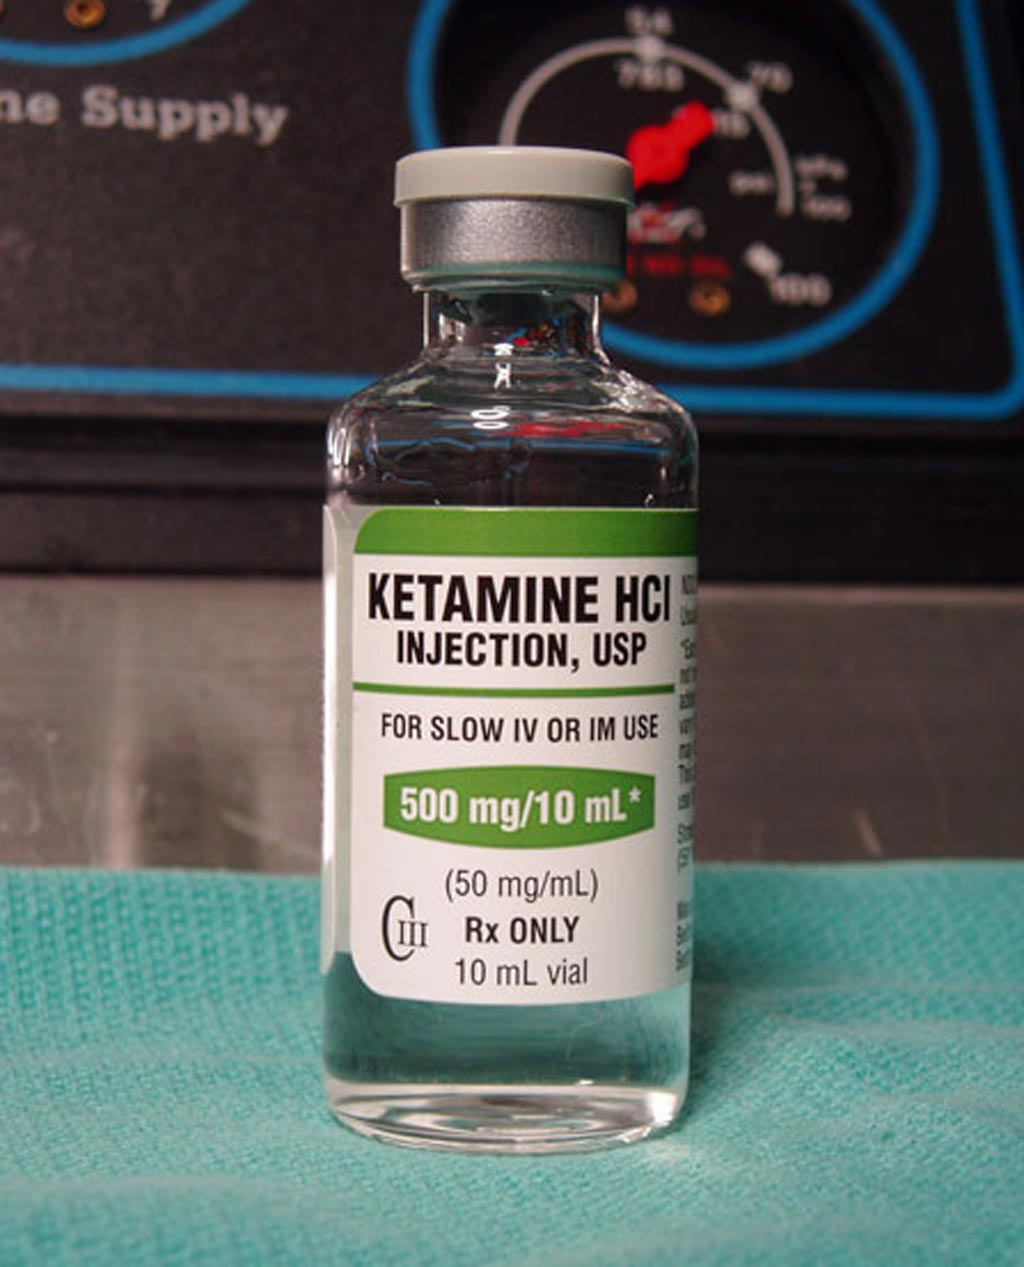 Image: New research suggests ketamine can rapidly reduce suicidal thoughts in the depressed (Photo courtesy of Erowid).